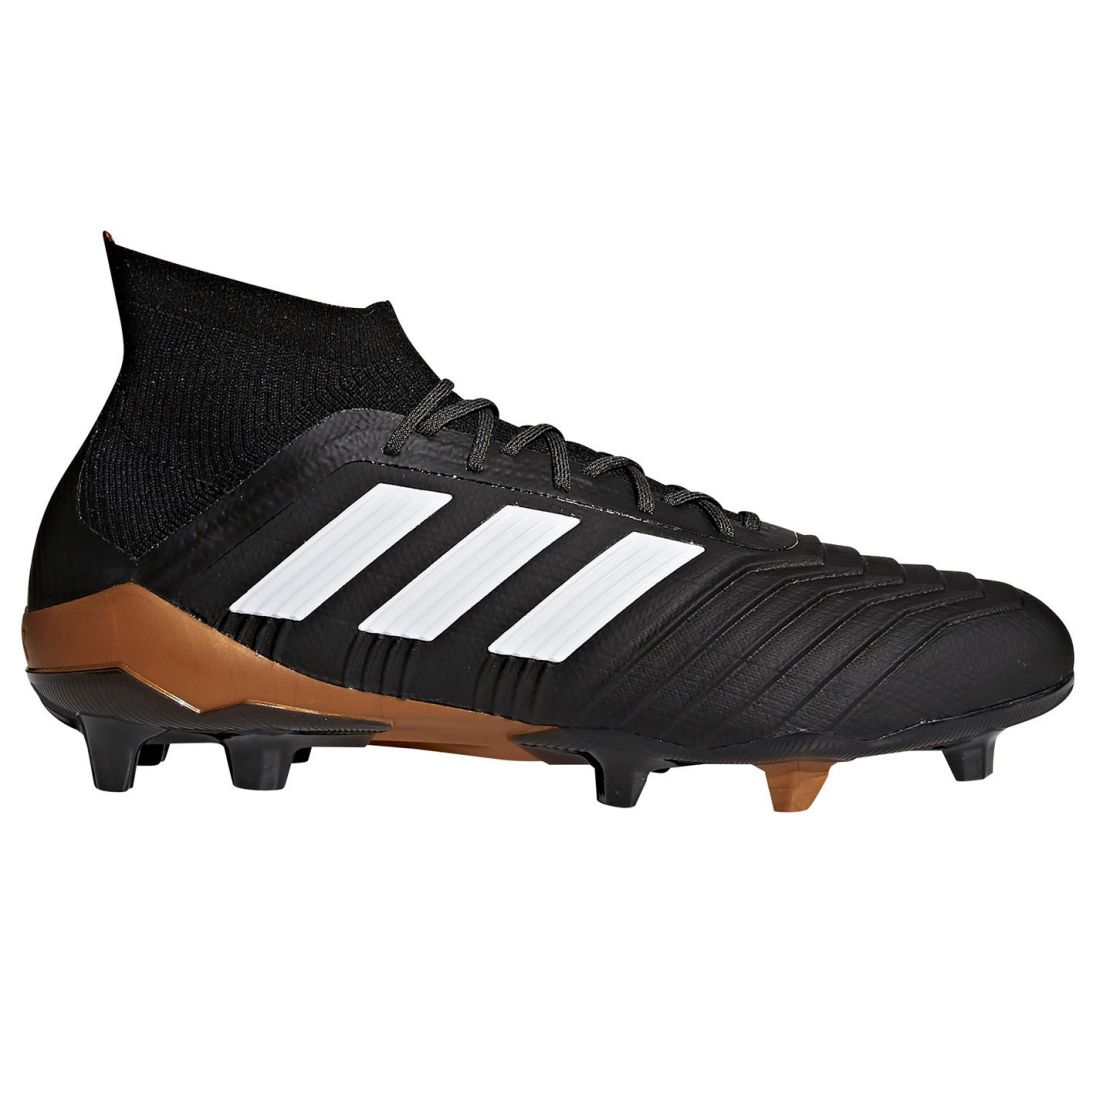 save off 2b4de f24d5 Image is loading adidas-Mens-Predator-18-1-FG-Football-Boots-